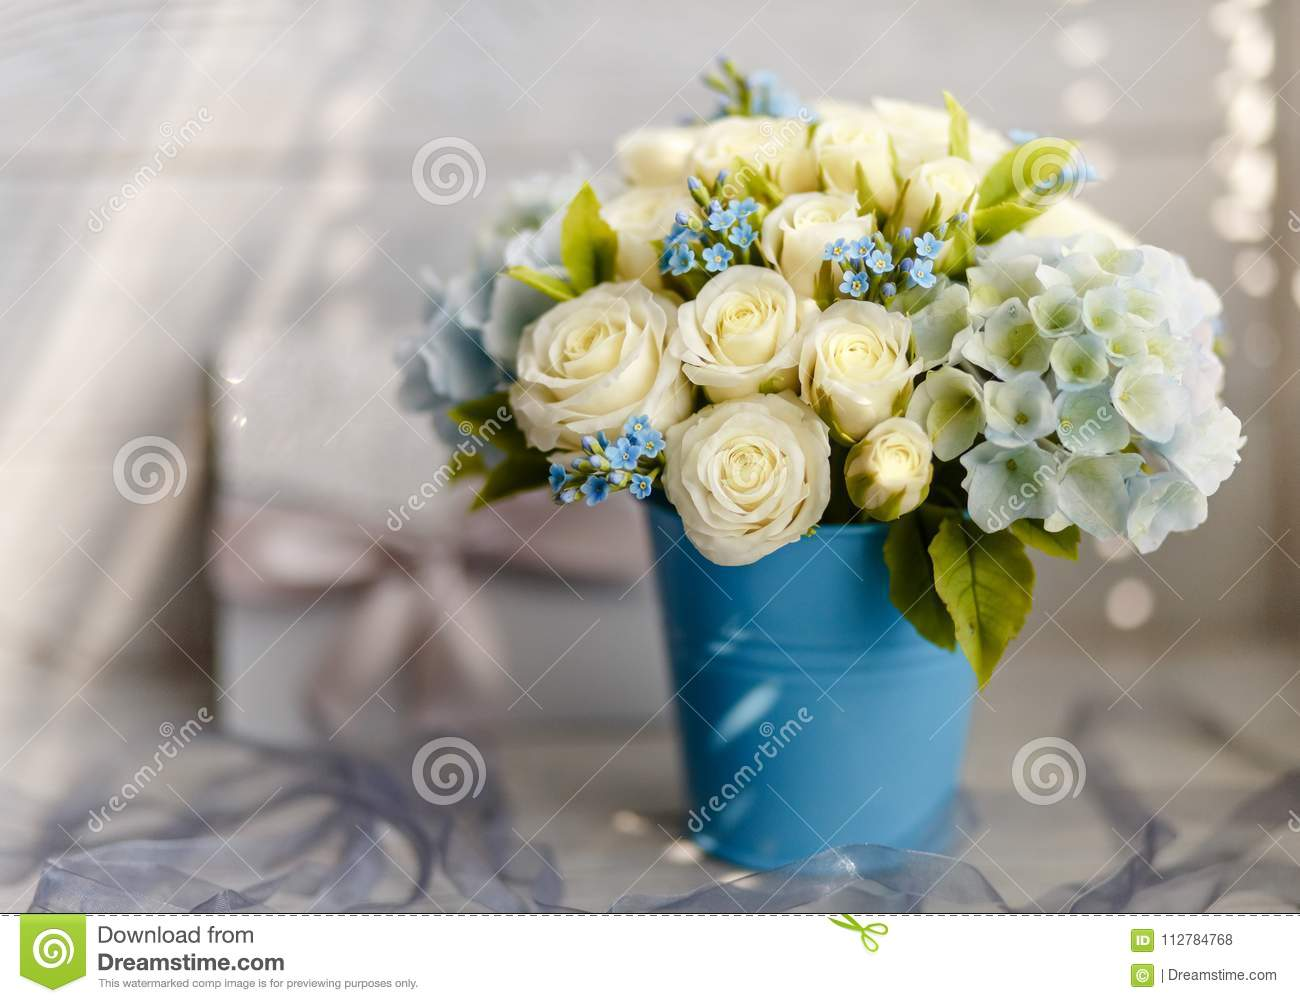 Blue and white wedding flowers stock photo image of celebrating download blue and white wedding flowers stock photo image of celebrating cake izmirmasajfo